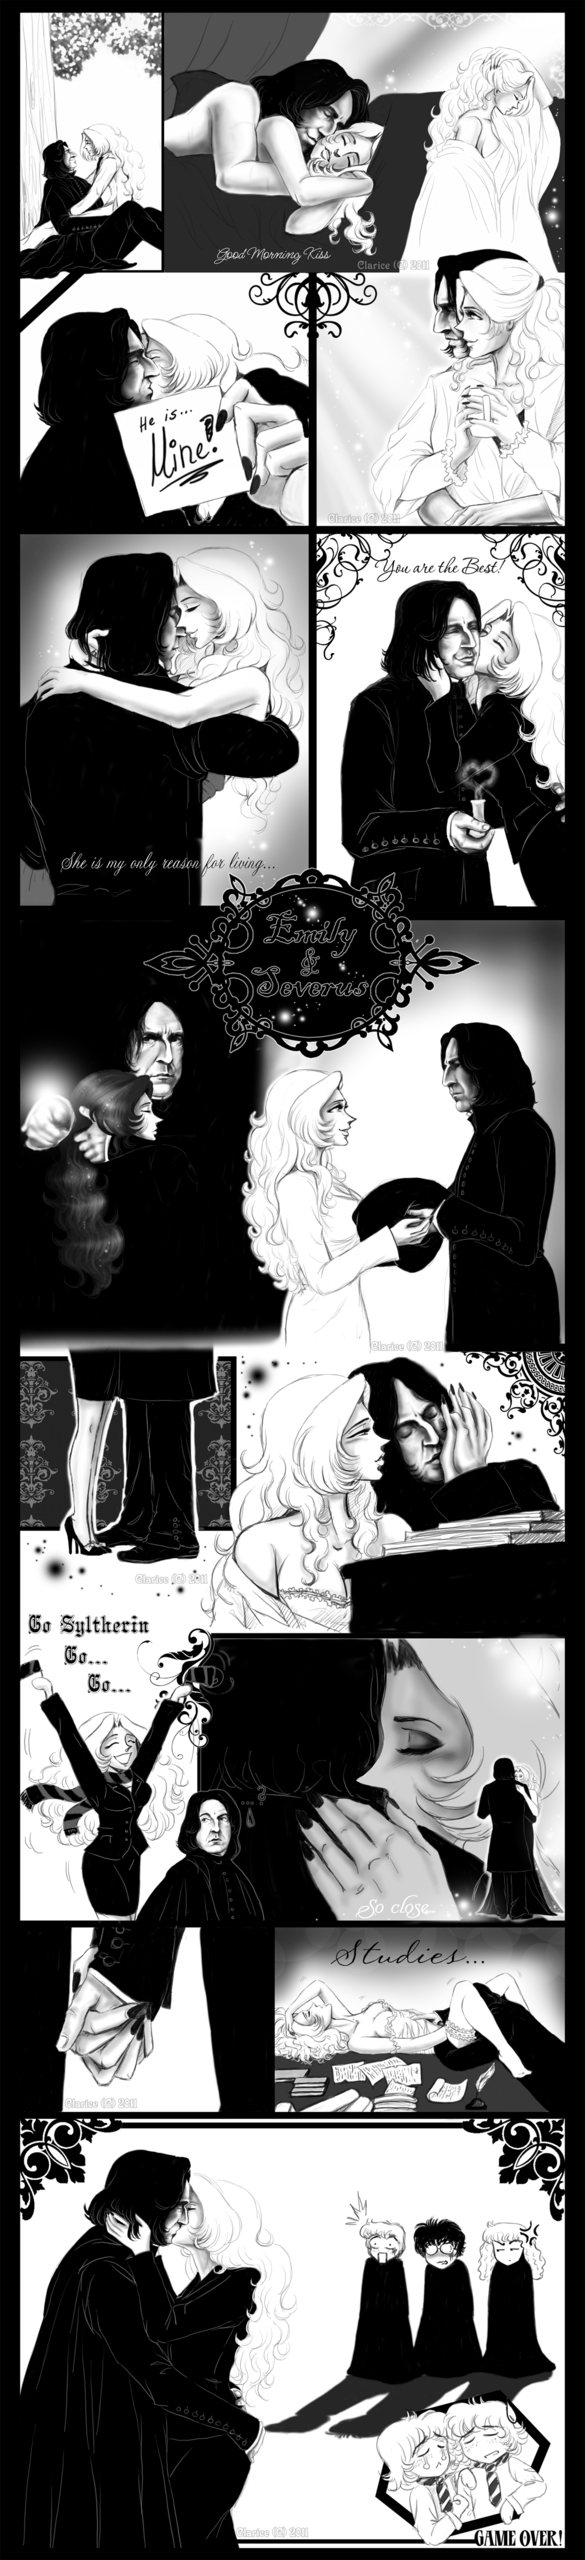 Emily Brown and Severus Snape 2